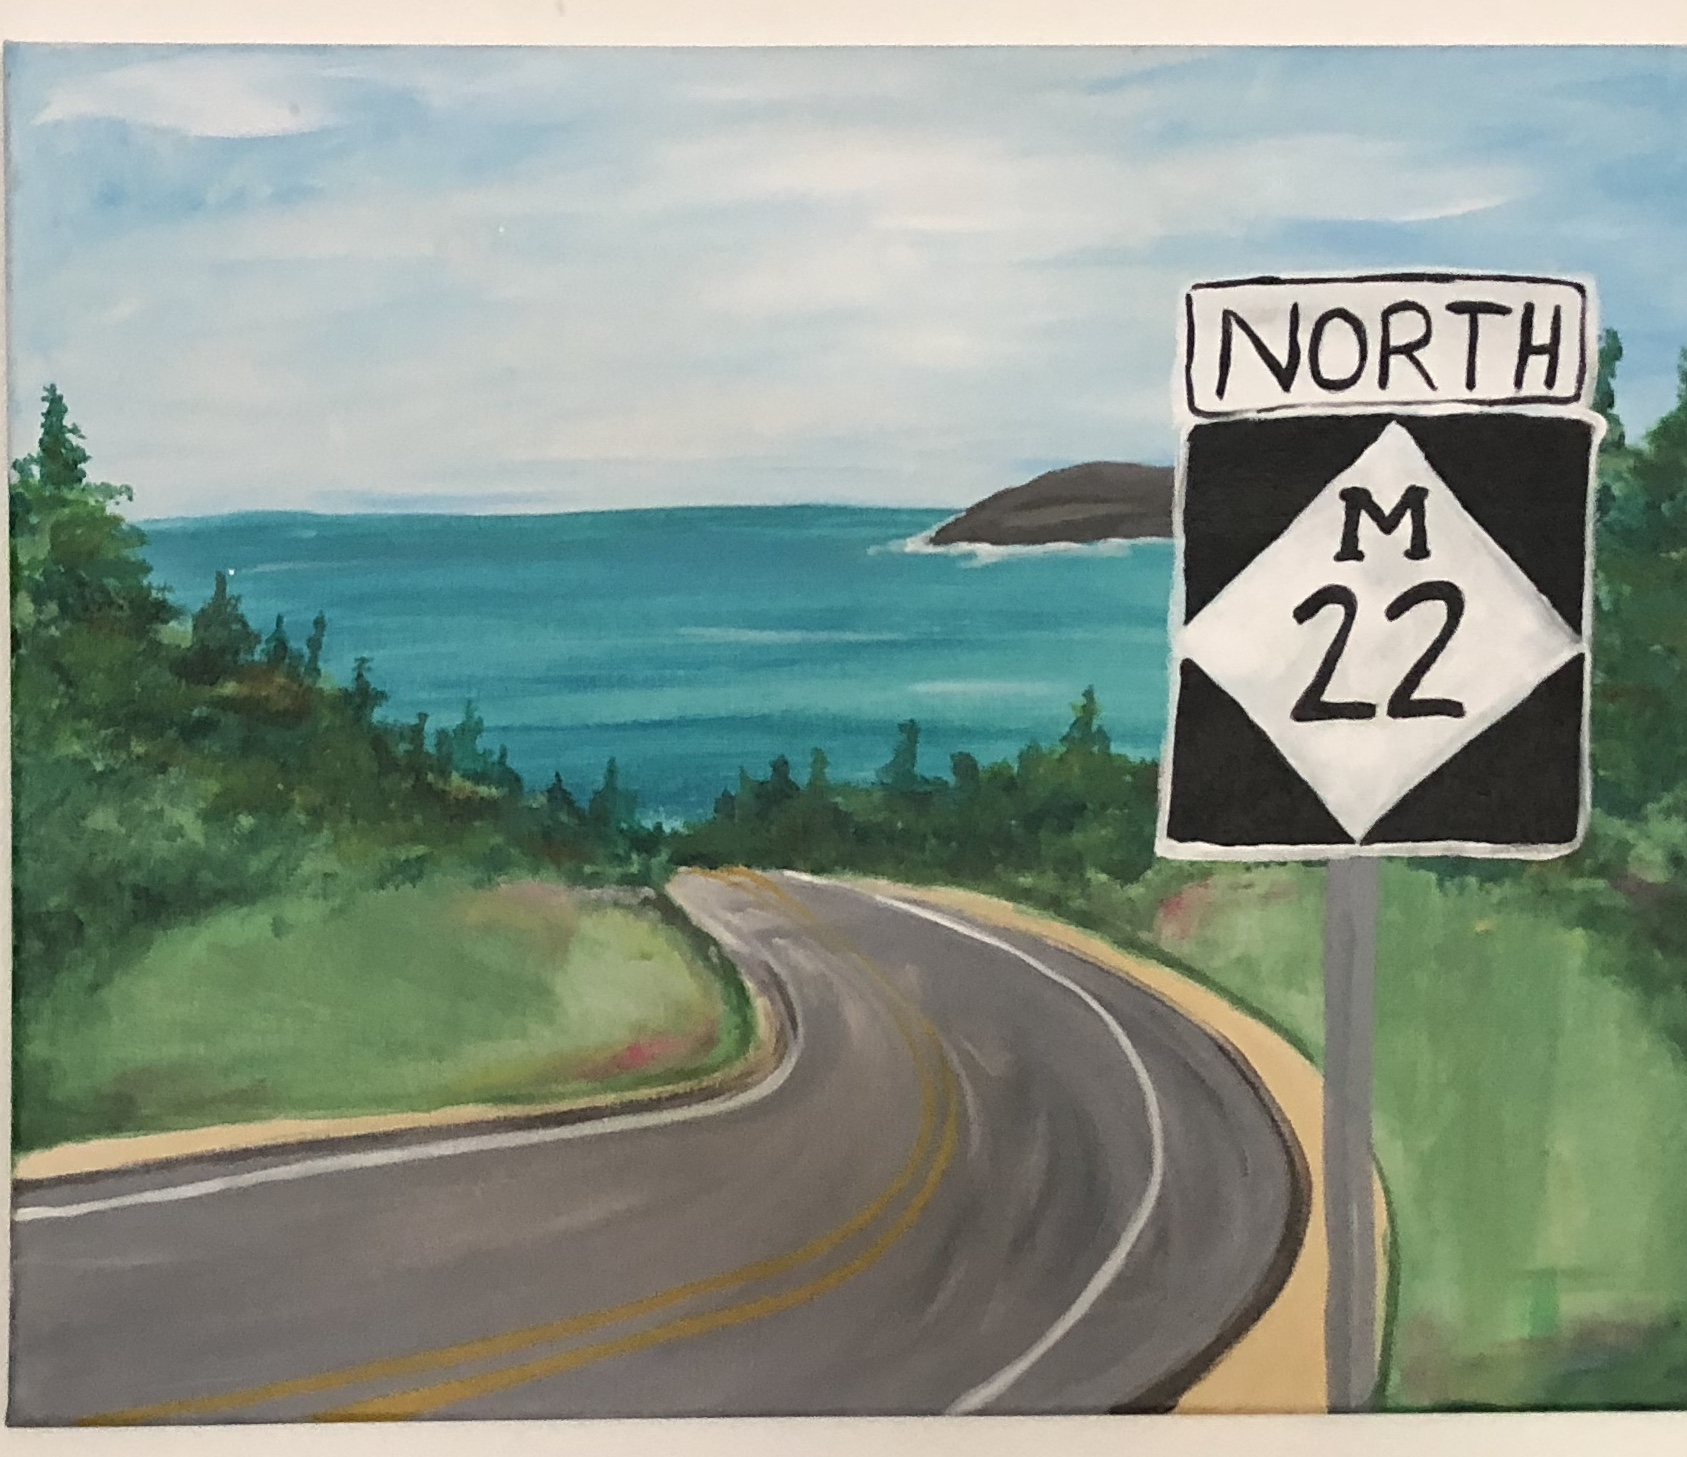 M22 - Michigan Roadway!